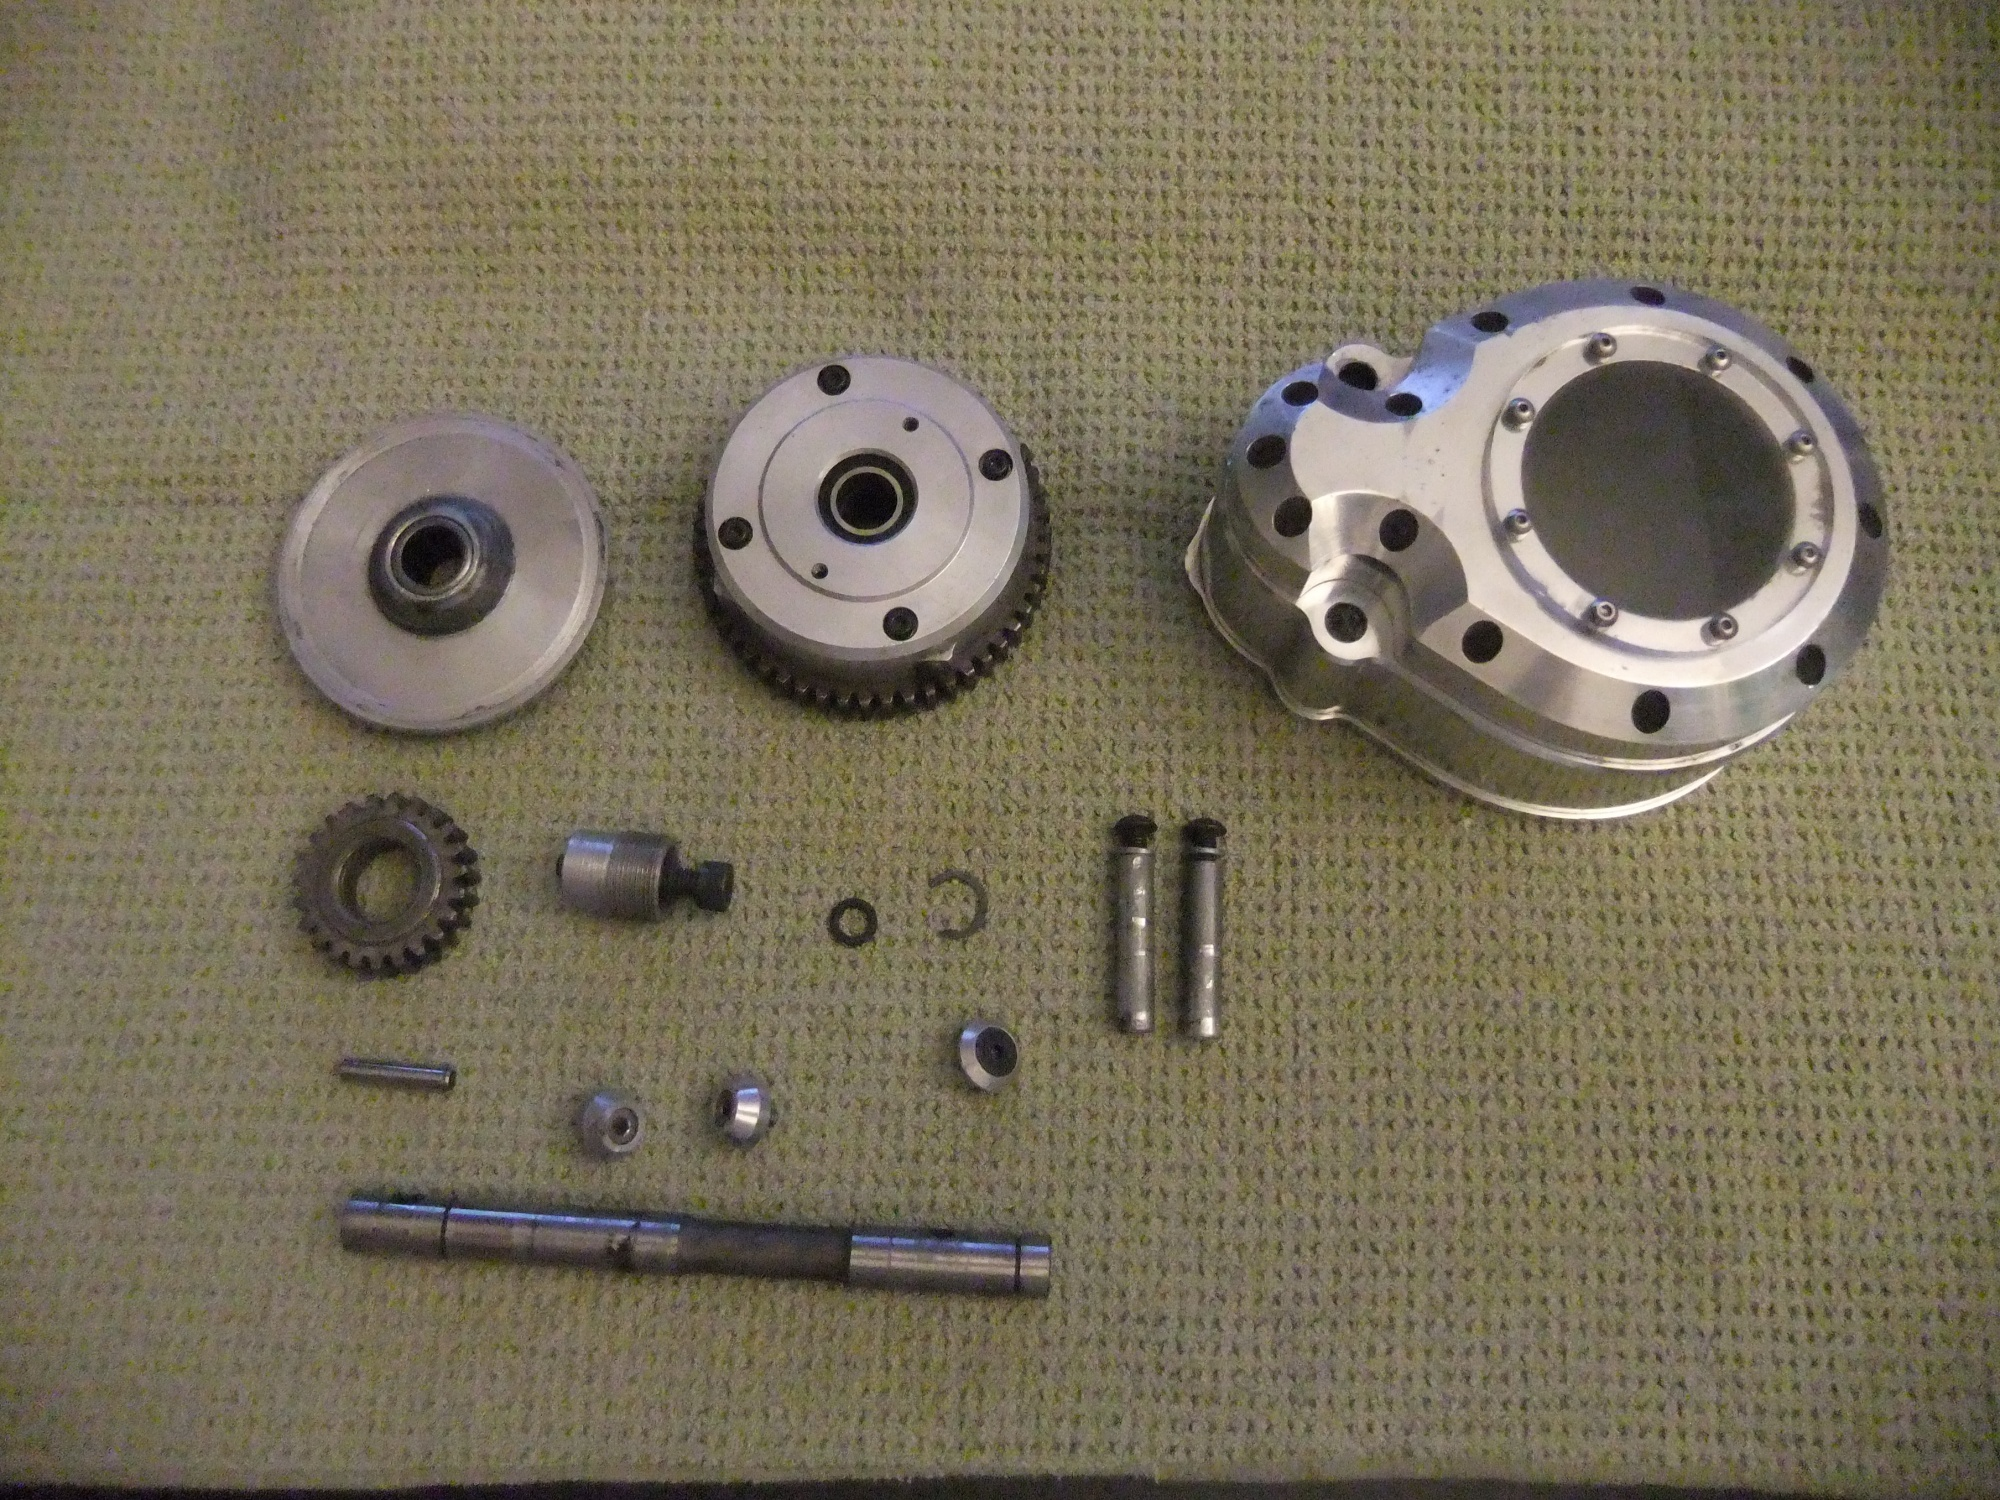 HPI Baja 5T Baja Skunkworks 2 Speed (23/ 51 gearing) and a Python Motorsports Billet Aluminum 2-Speed Gear Cover